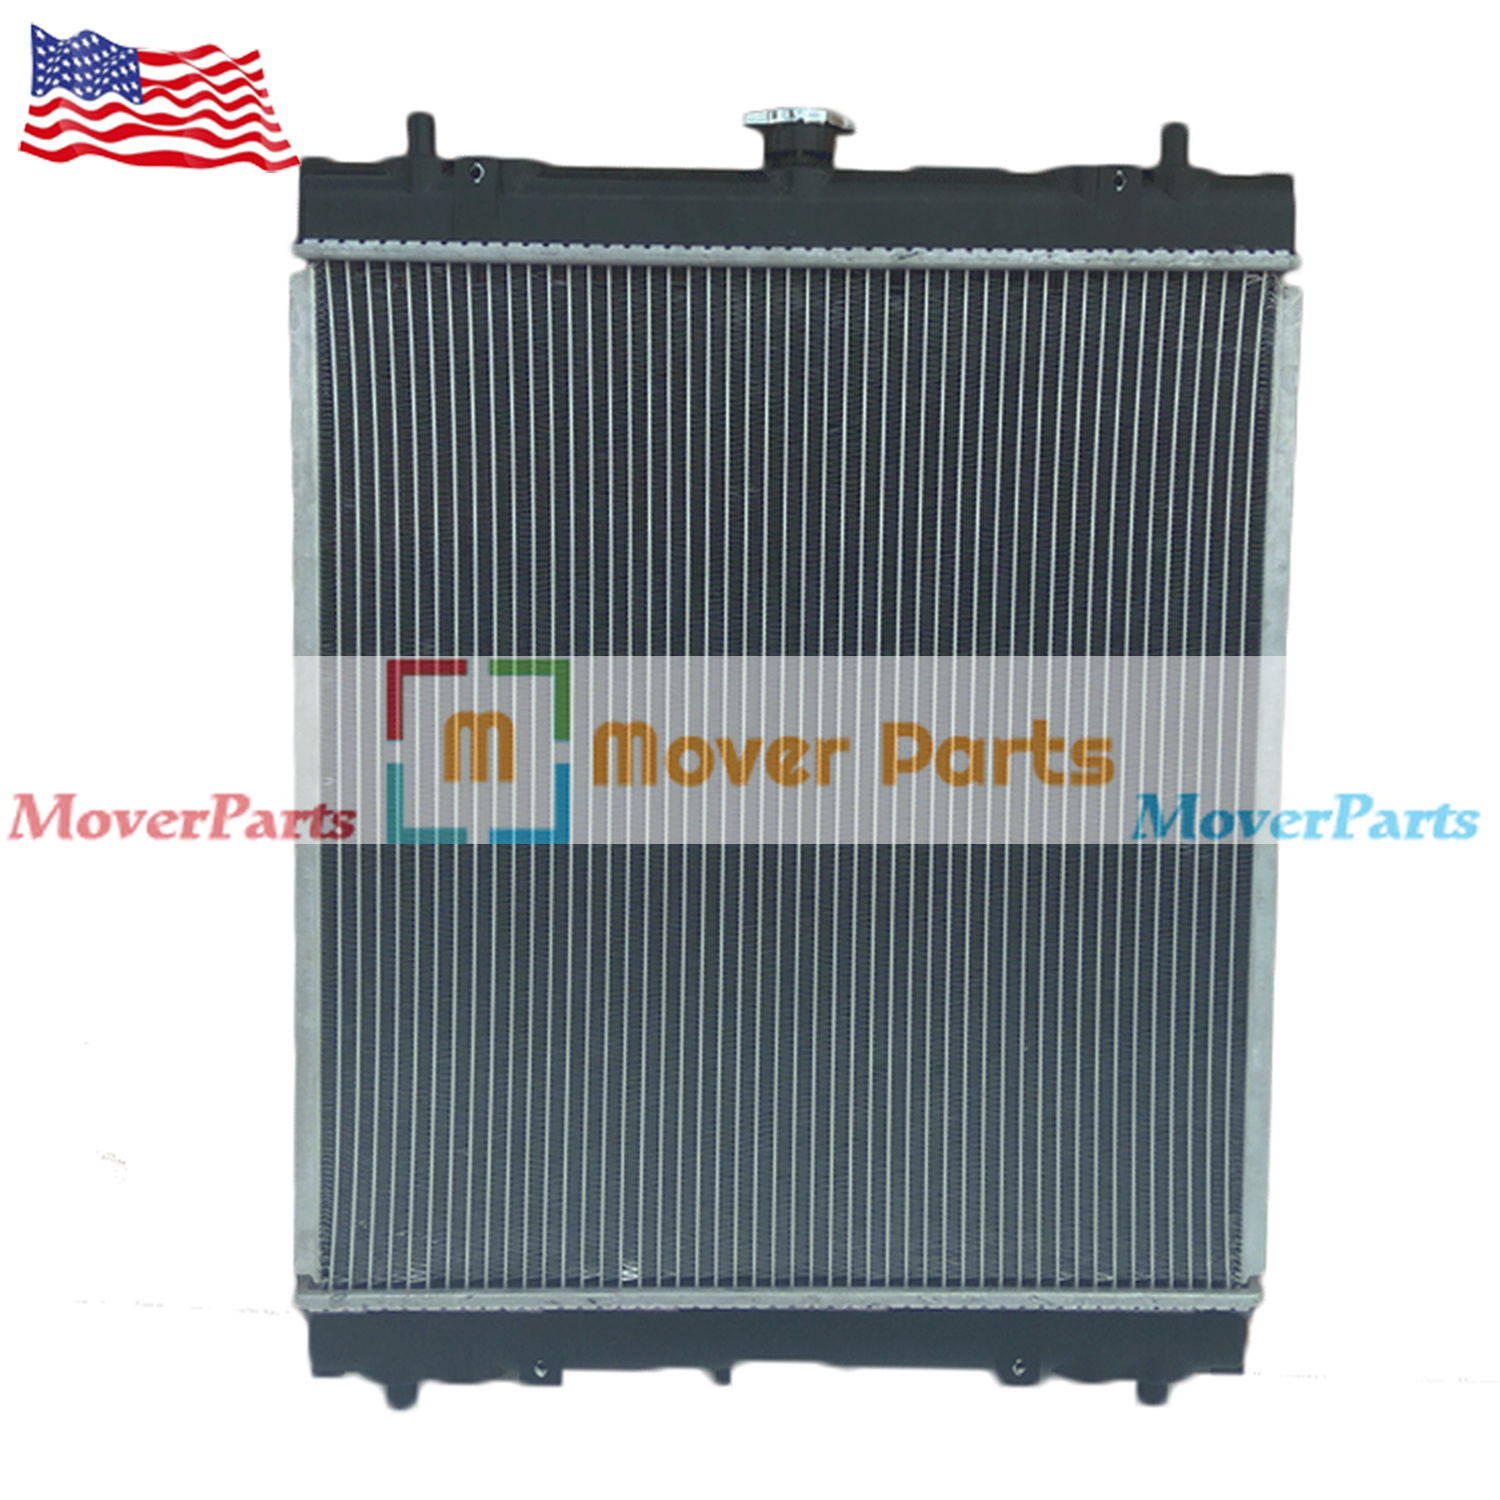 Details about Water Tank Radiator Core 4479181 for Hitachi Excavator ZX70  ZAX70 ZAXIS70 in USA